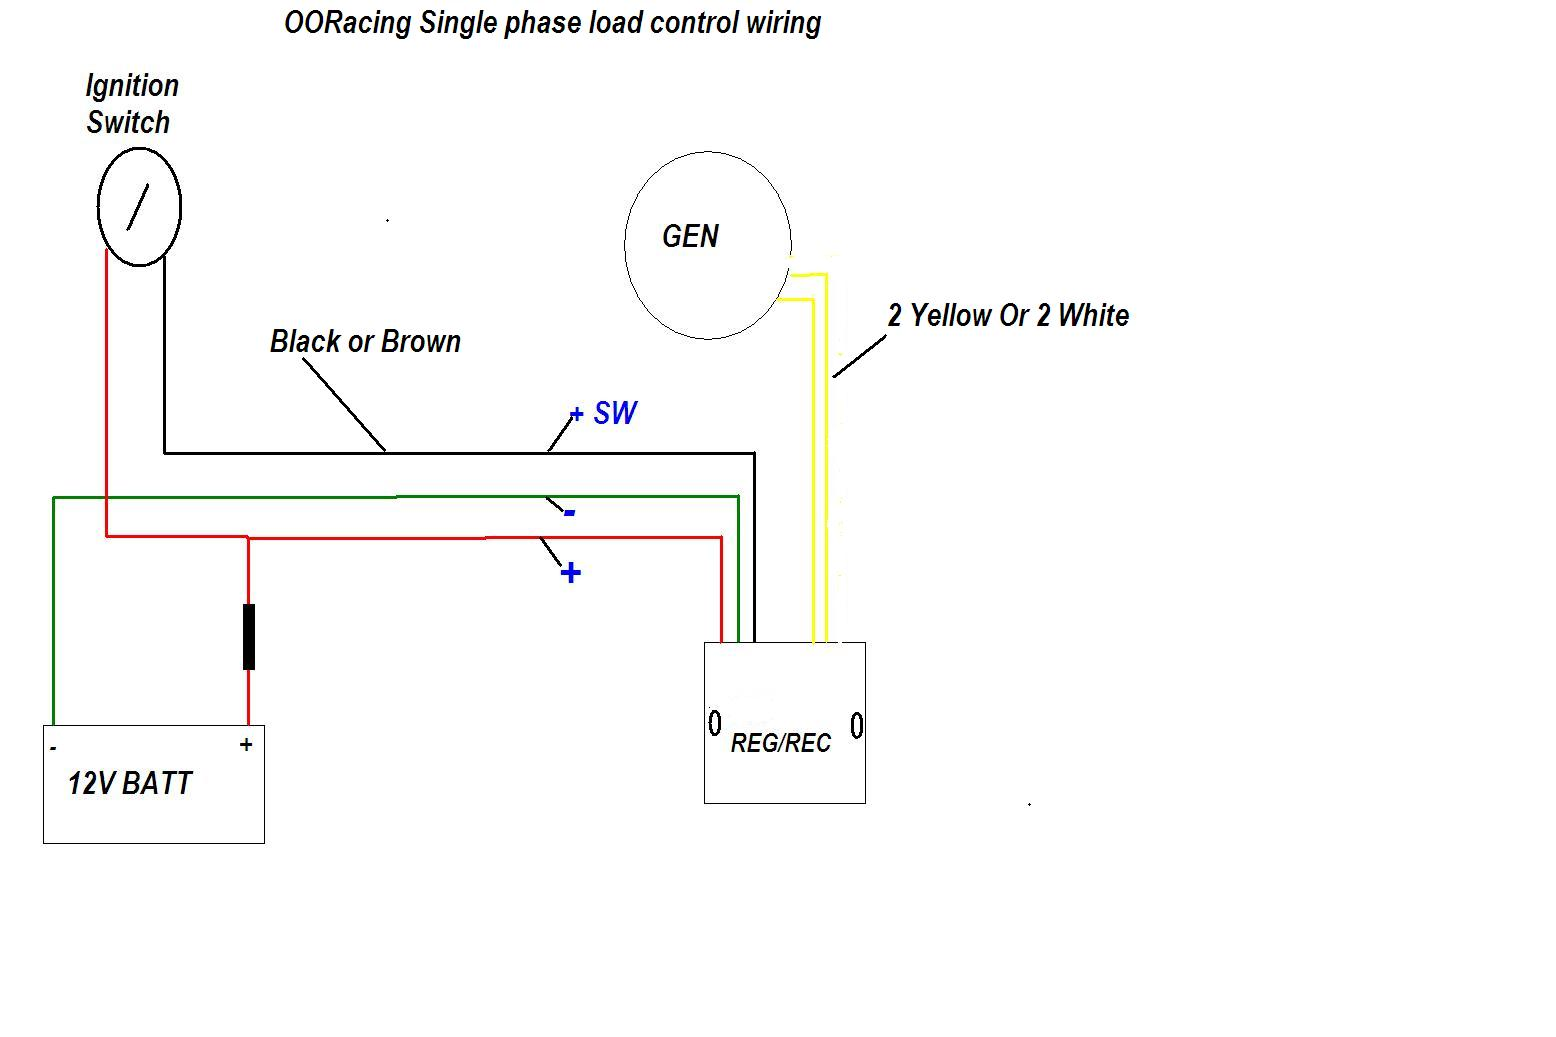 Pit Bike Wiring Diagram 23 Images Diagrams Kpx Dirt Single Phase 50w Gen Wiringresize6652c443ssl1 Amazing 125